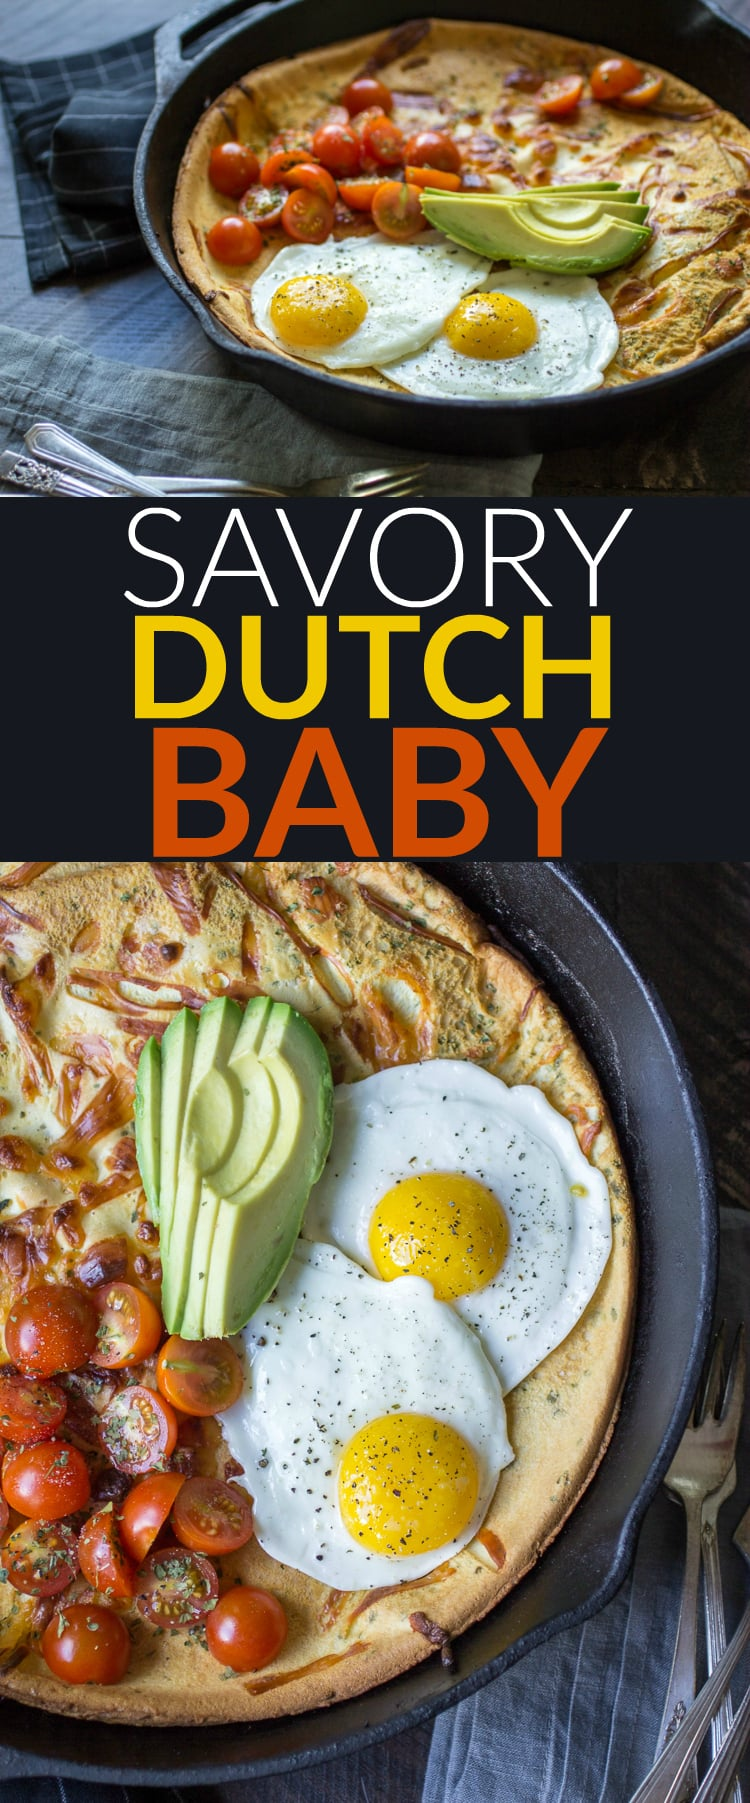 This Savory Dutch Baby is loaded with cheese and topped with tomato, avocado, and a perfect fried egg. Dig in!